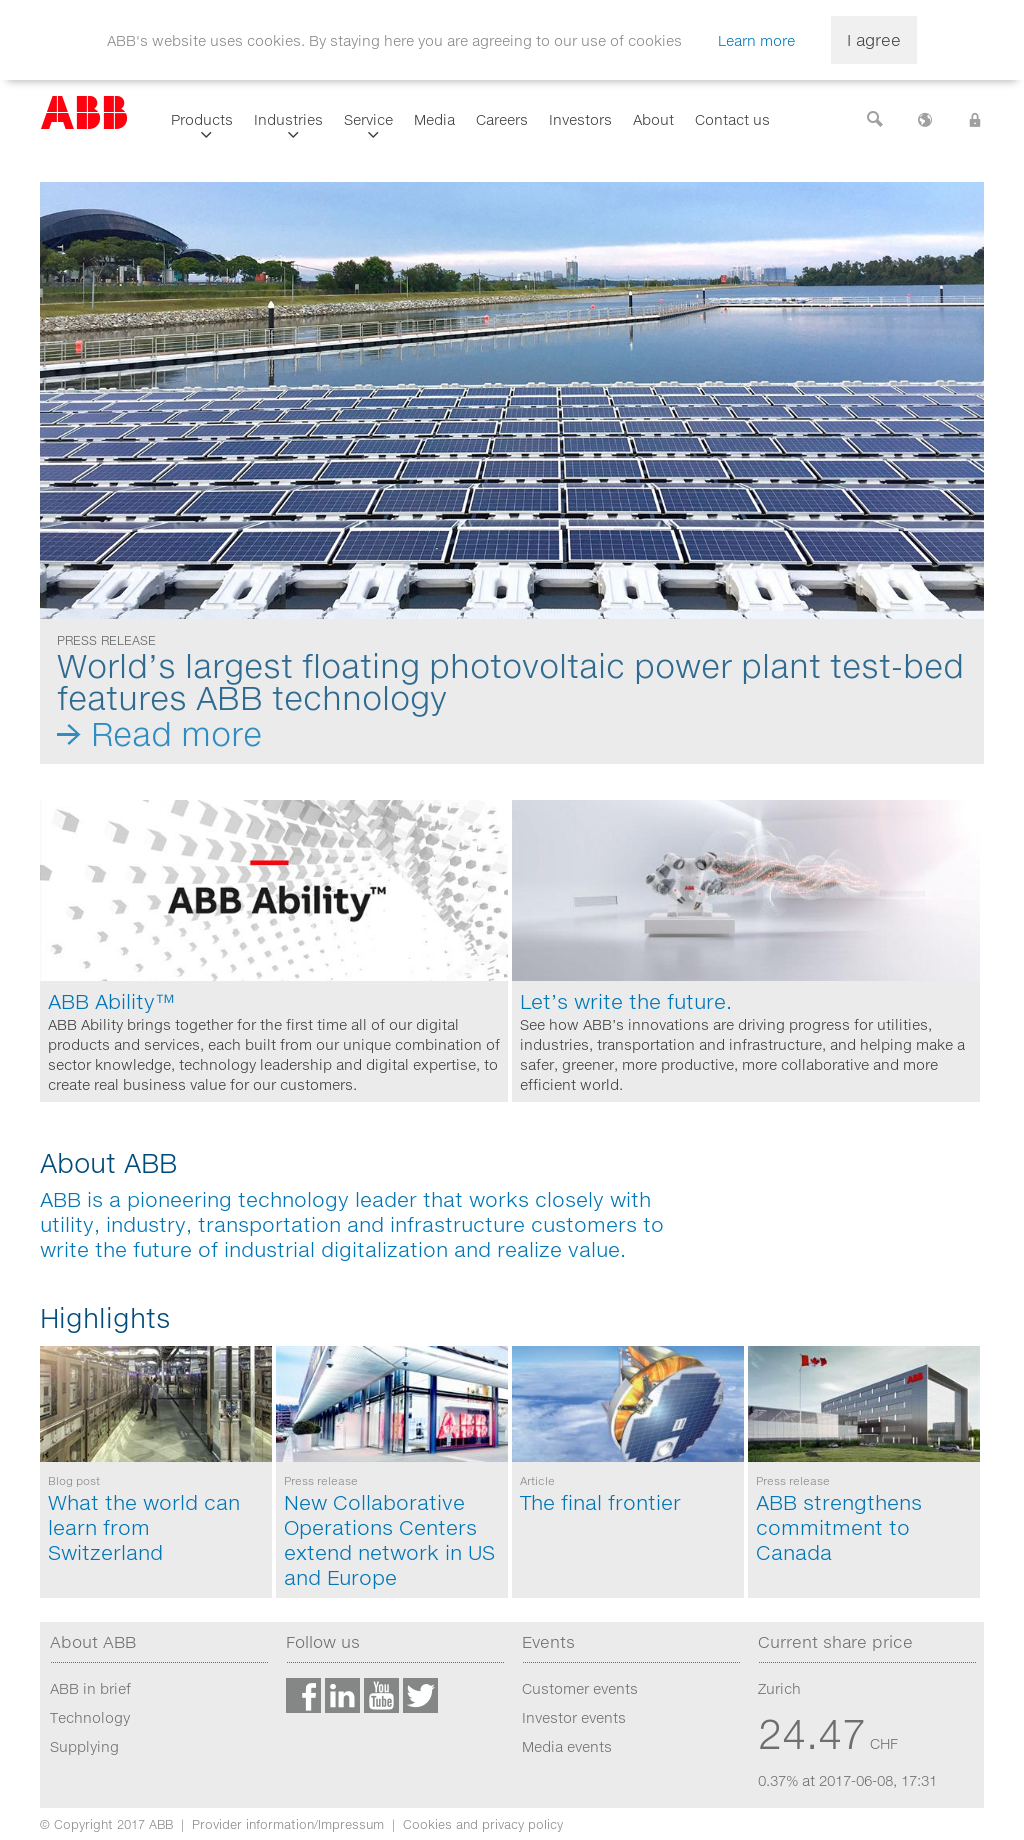 ABB Competitors, Revenue and Employees - Owler Company Profile